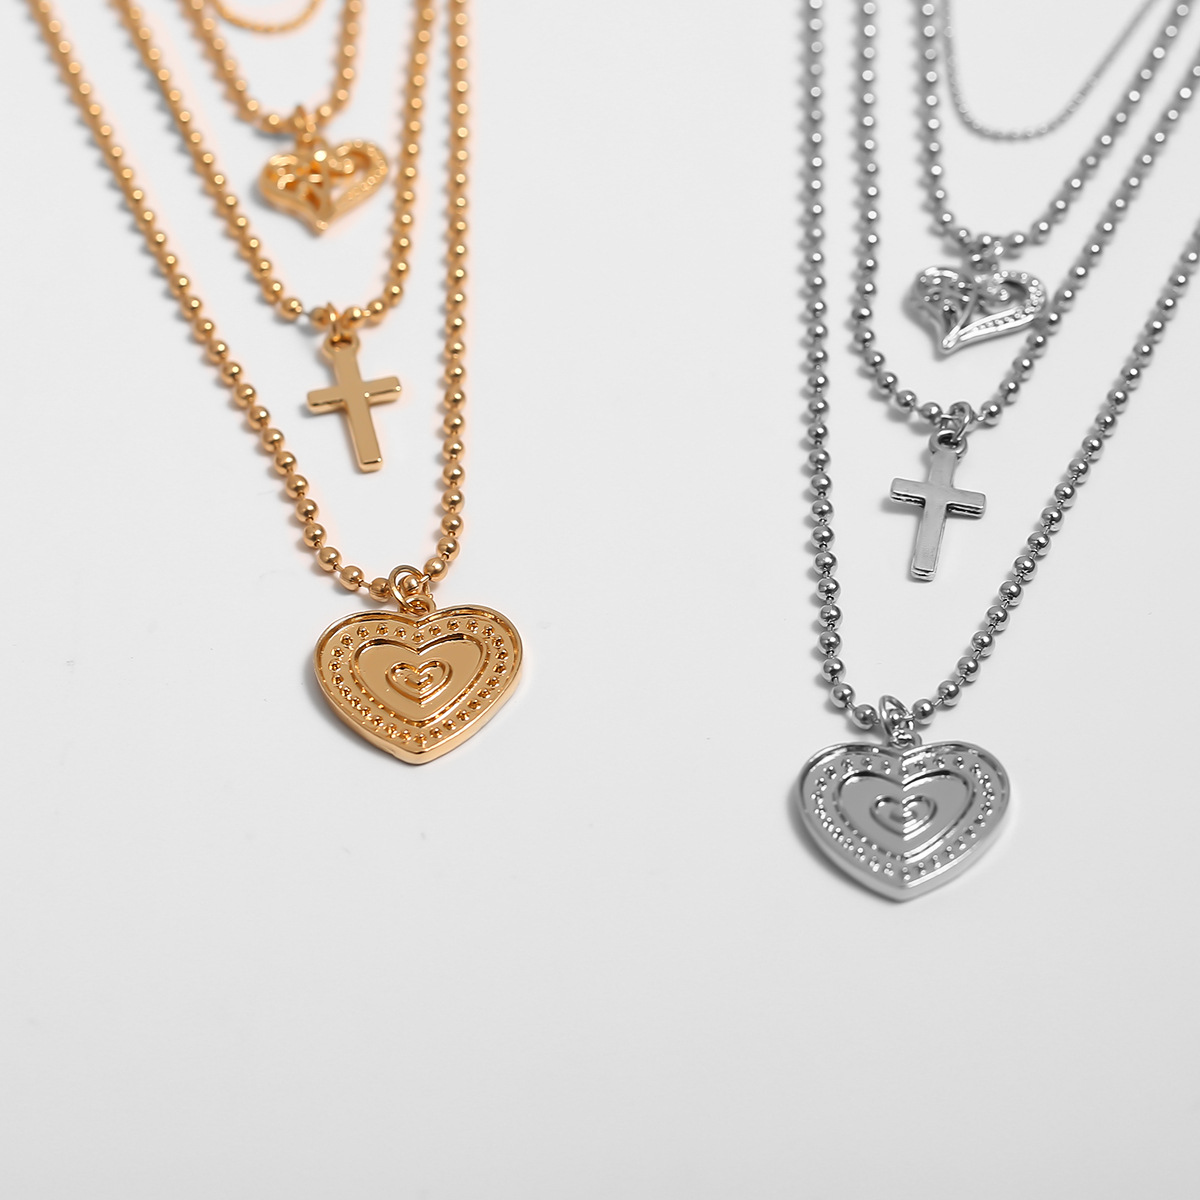 Geometric multi-layer temperament item female round bead chain heart-shaped hollow pendant necklace NHXR177022